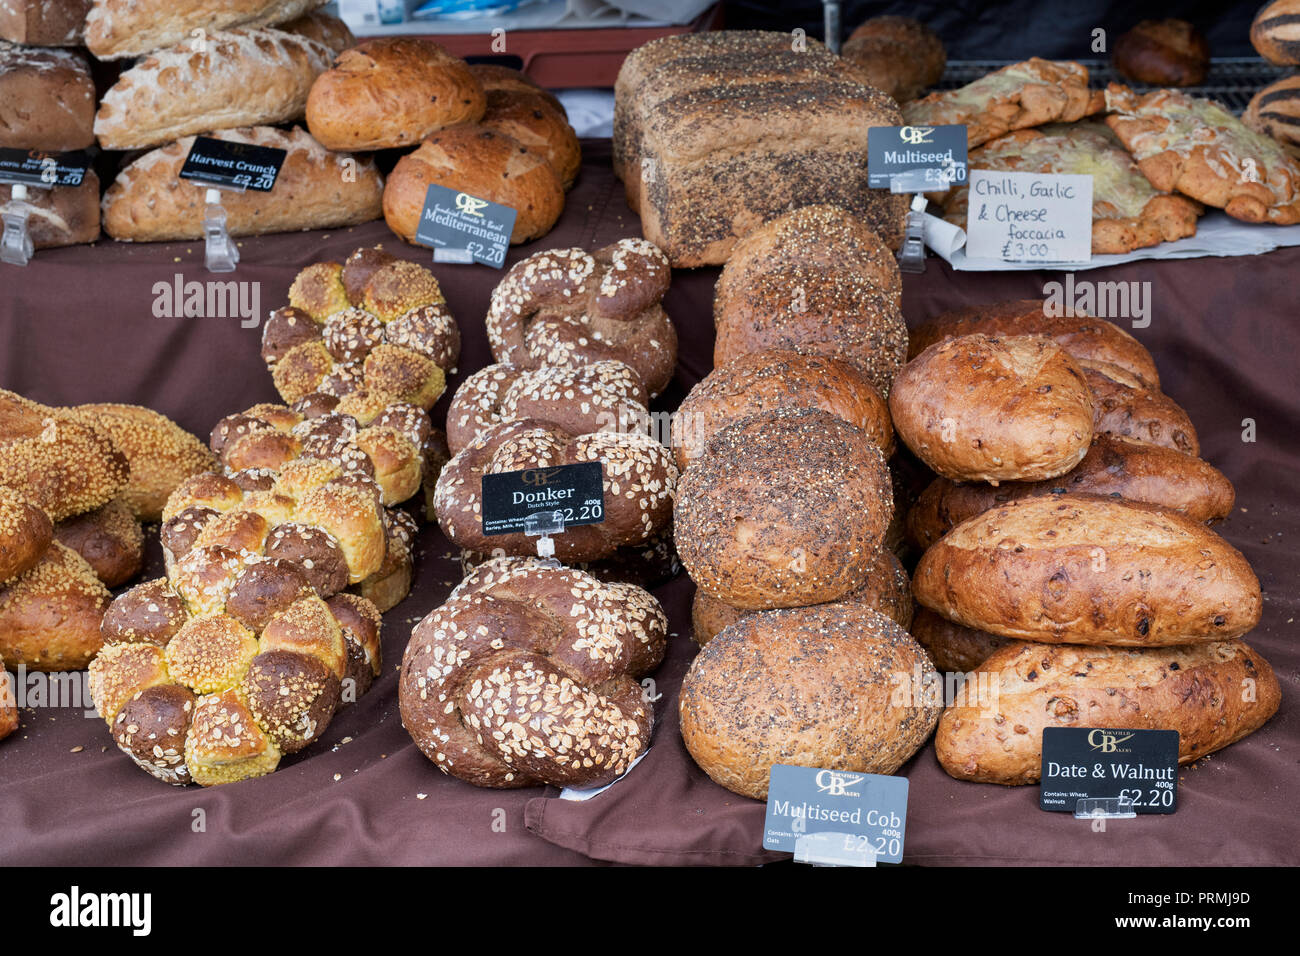 Artisan Breads for sale at the Thame food festival. Thame, Oxfordshire, England - Stock Image